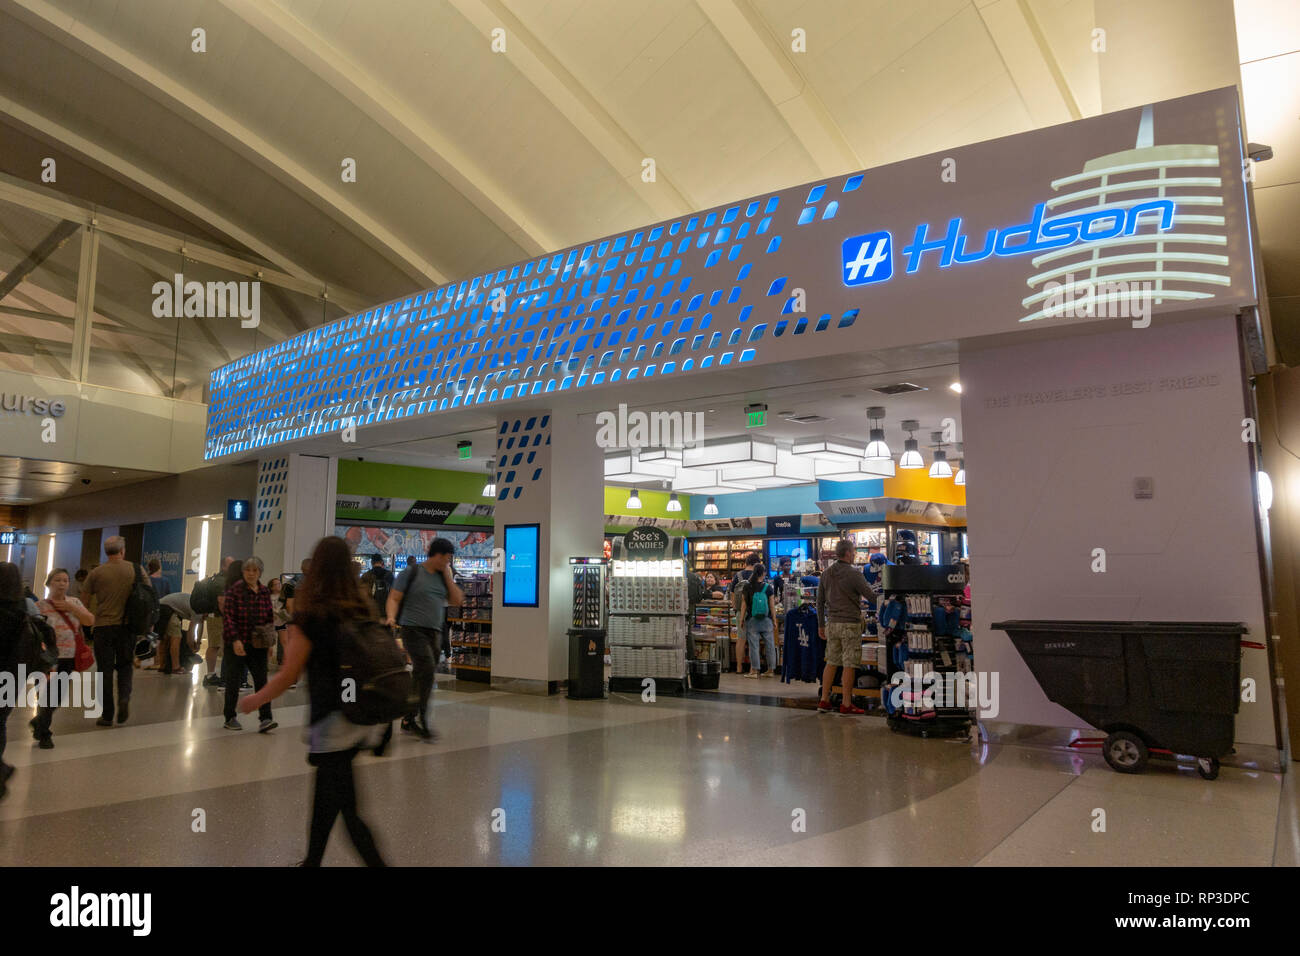 A branch of Hudson Booksellers in Los Angeles International Airport (LAX), California, United States. - Stock Image